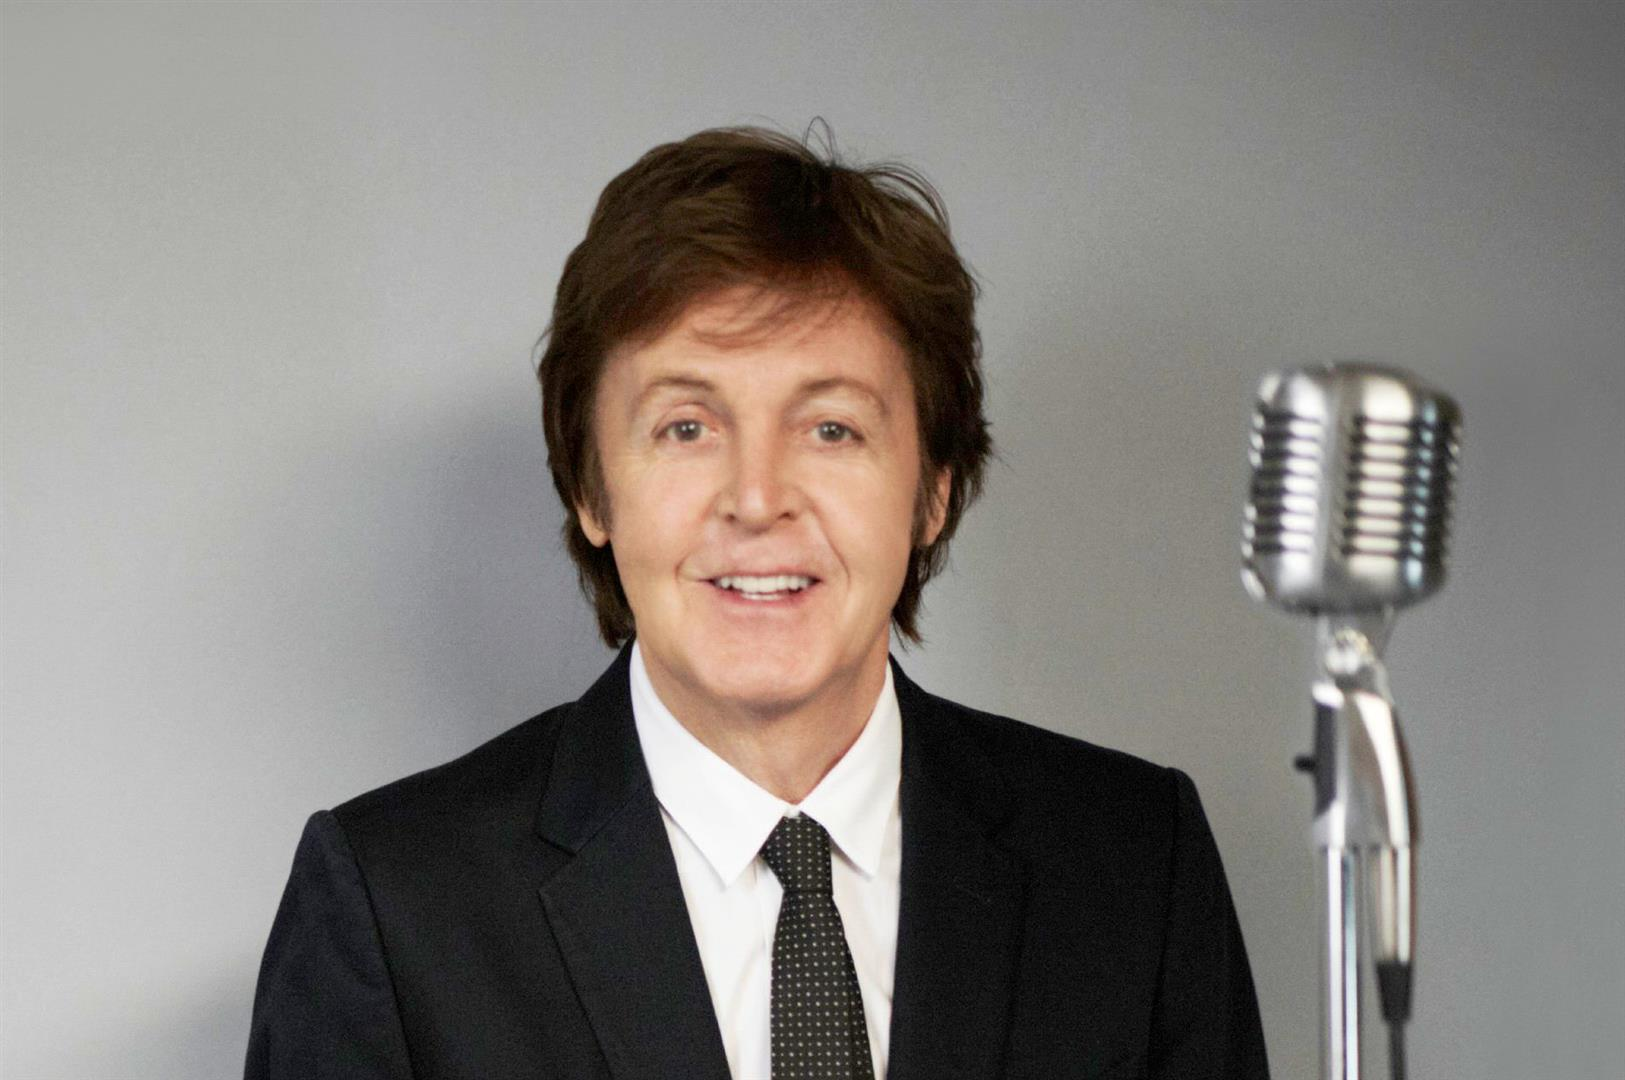 1942 Freimaurer und evtl. Jude Paul McCartney. Musiker. The Beatles. Yellow Submarine, Yesterday, Let It Be, Help, She Loves You, A Hard Day's Night und Hey Jude.